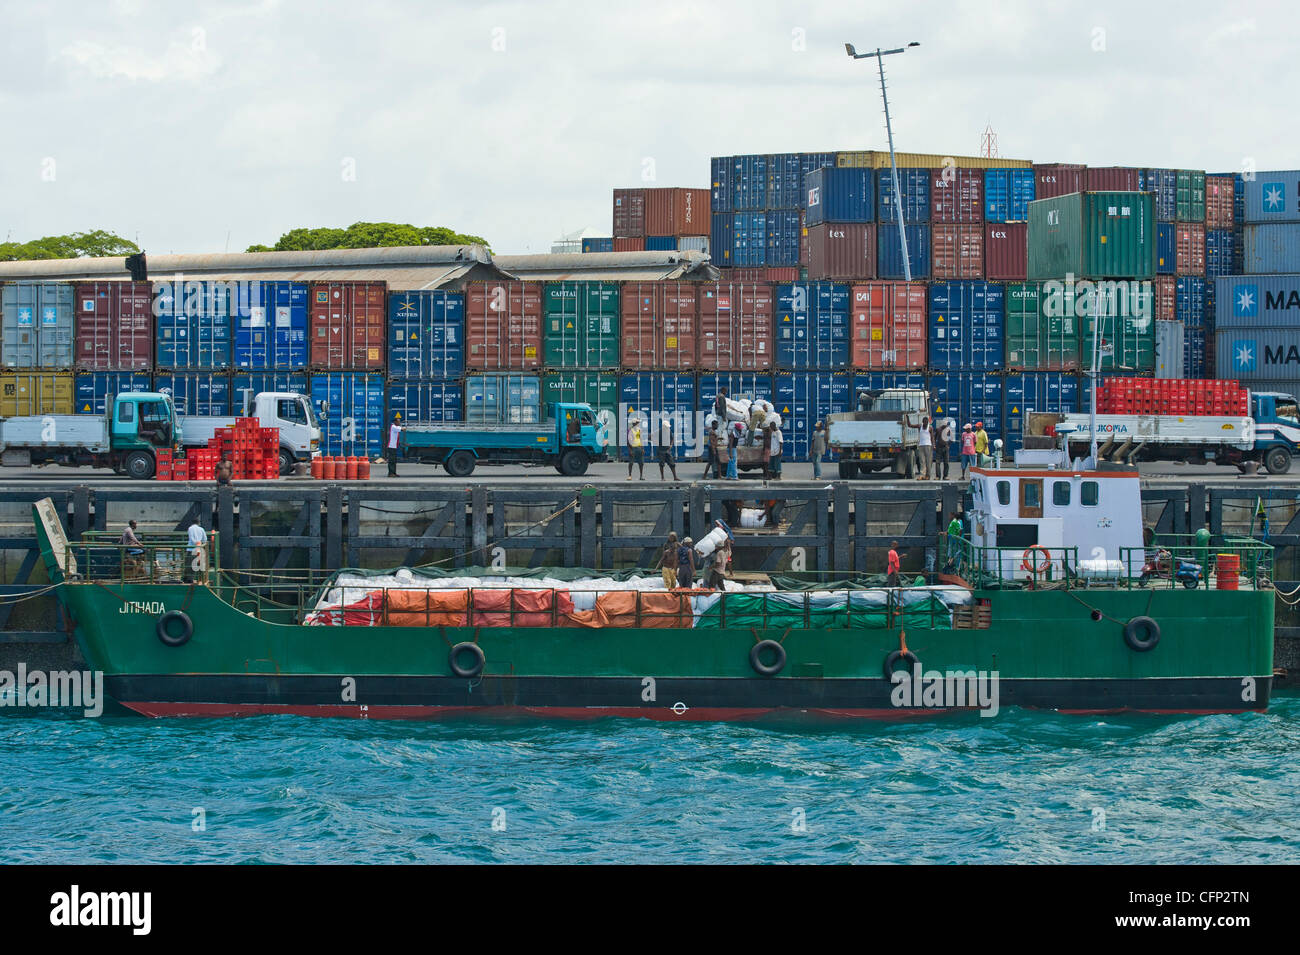 Containers at a terminal in the harbour of Stone Town Zanzibar Tanzania - Stock Image